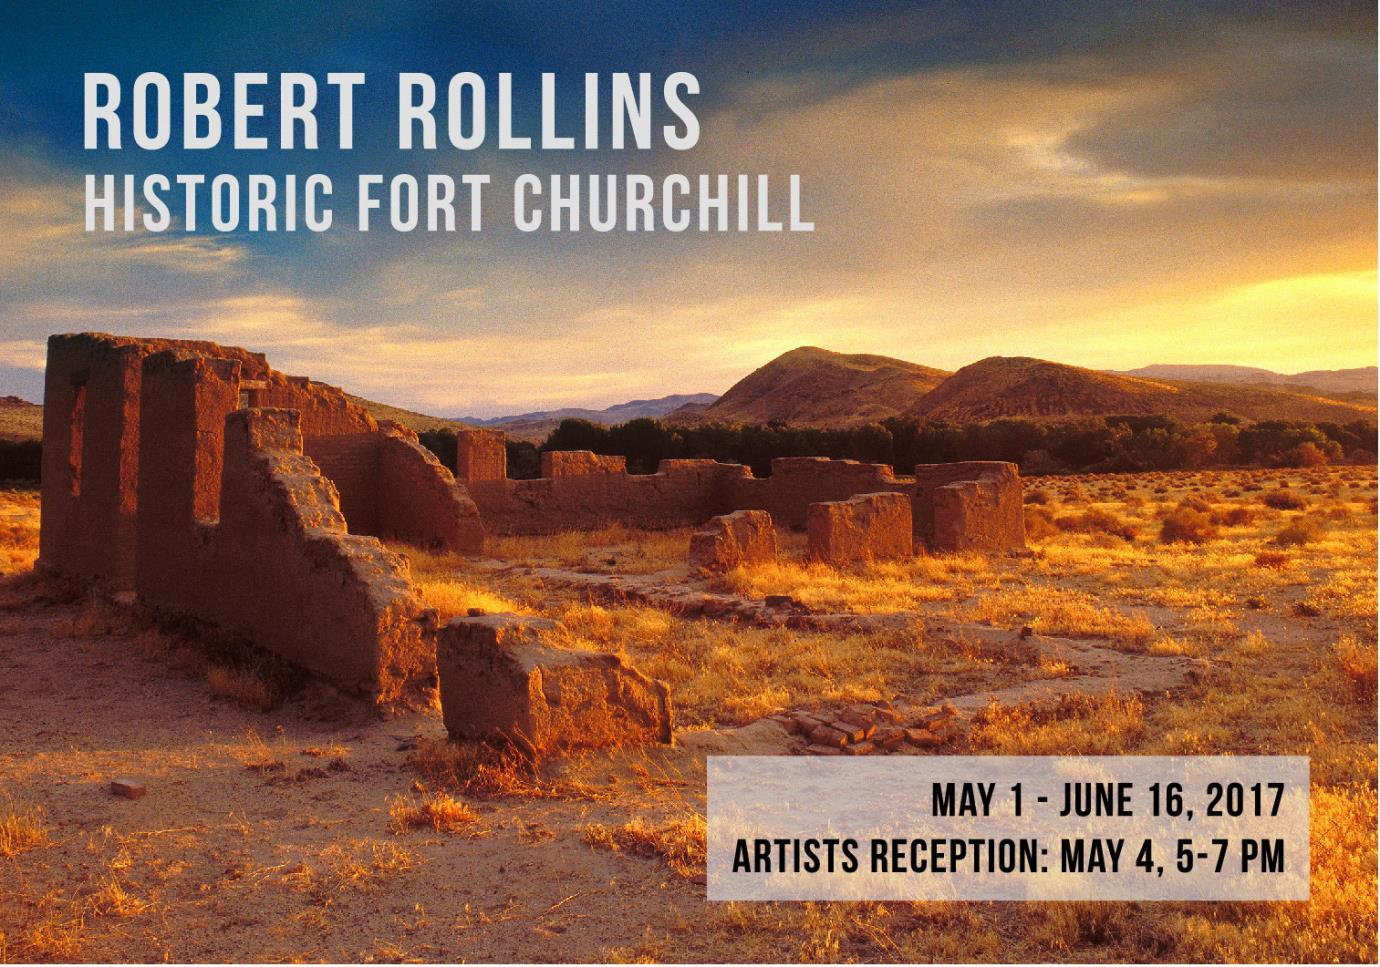 Robert Rollins Postcard Image featuring a desert landscape with fort collins and blue sky with clouds